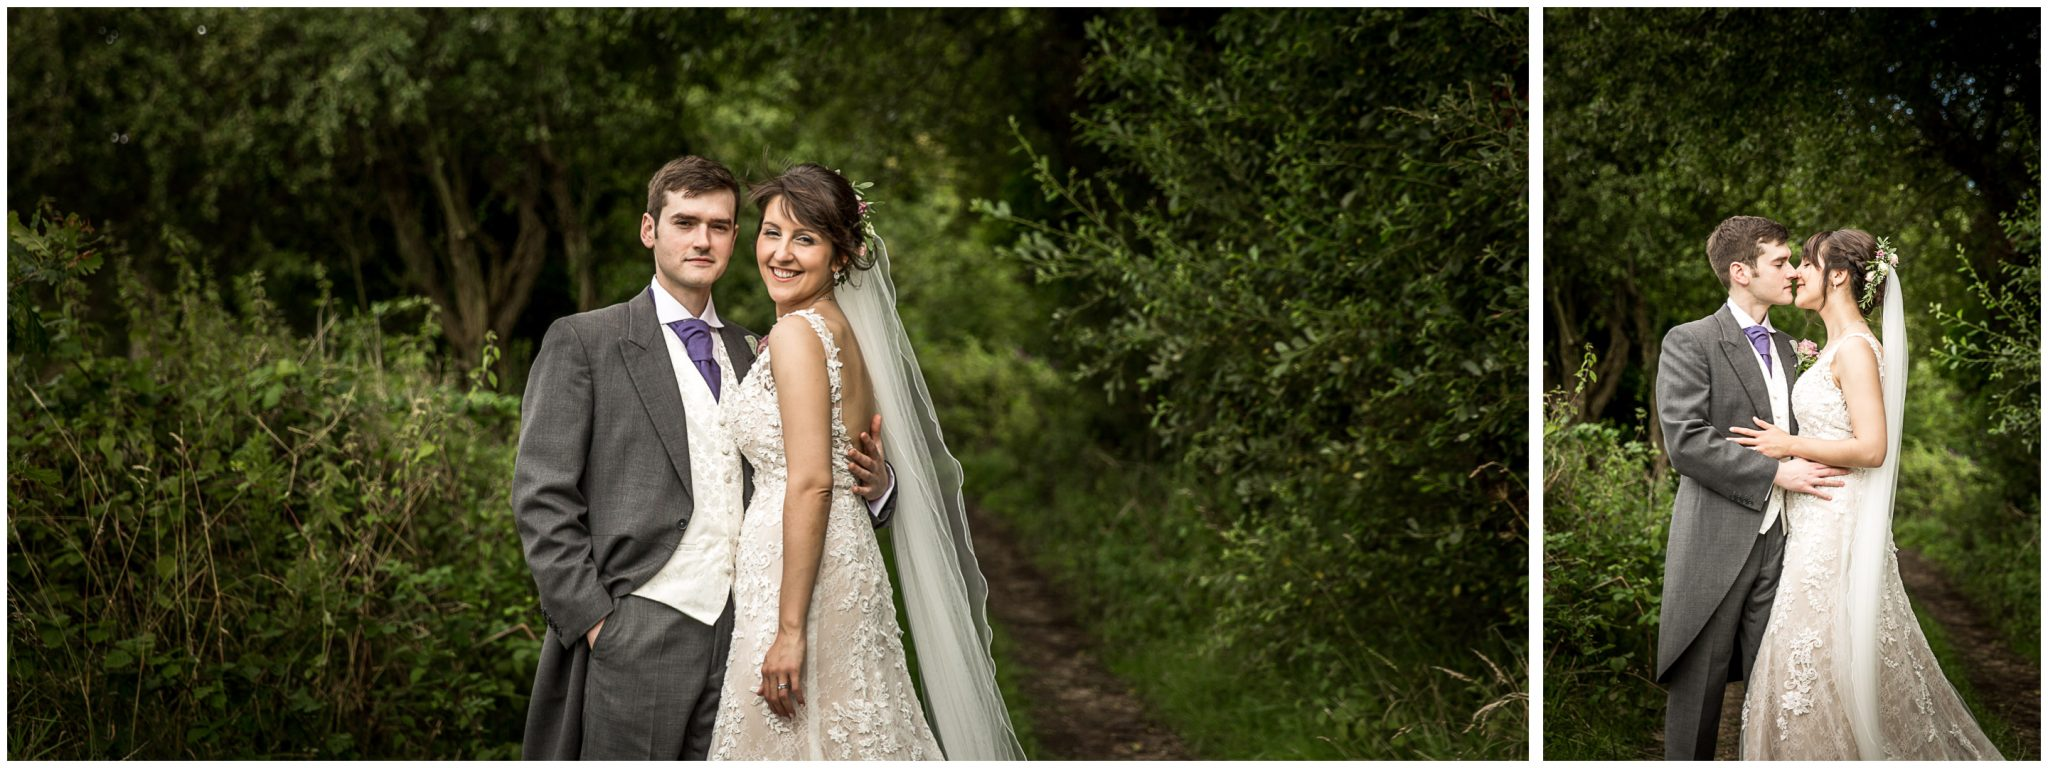 Sopley Mill wedding photography bride and groom colour portraits